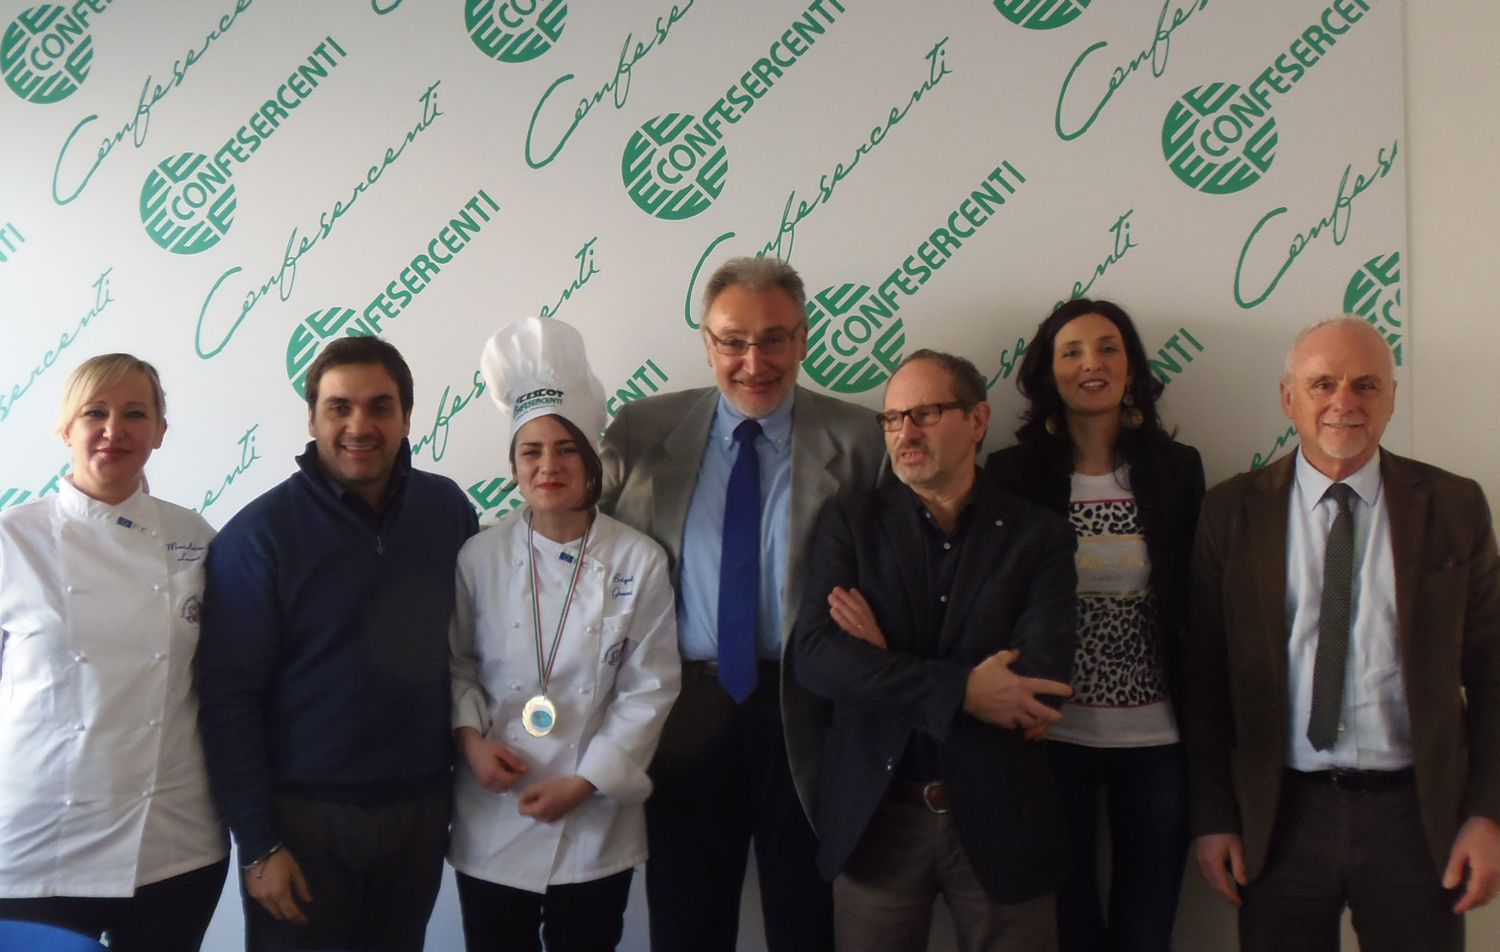 Allieva cescot campionessa di commis di toscana for Commis di cucina stipendio